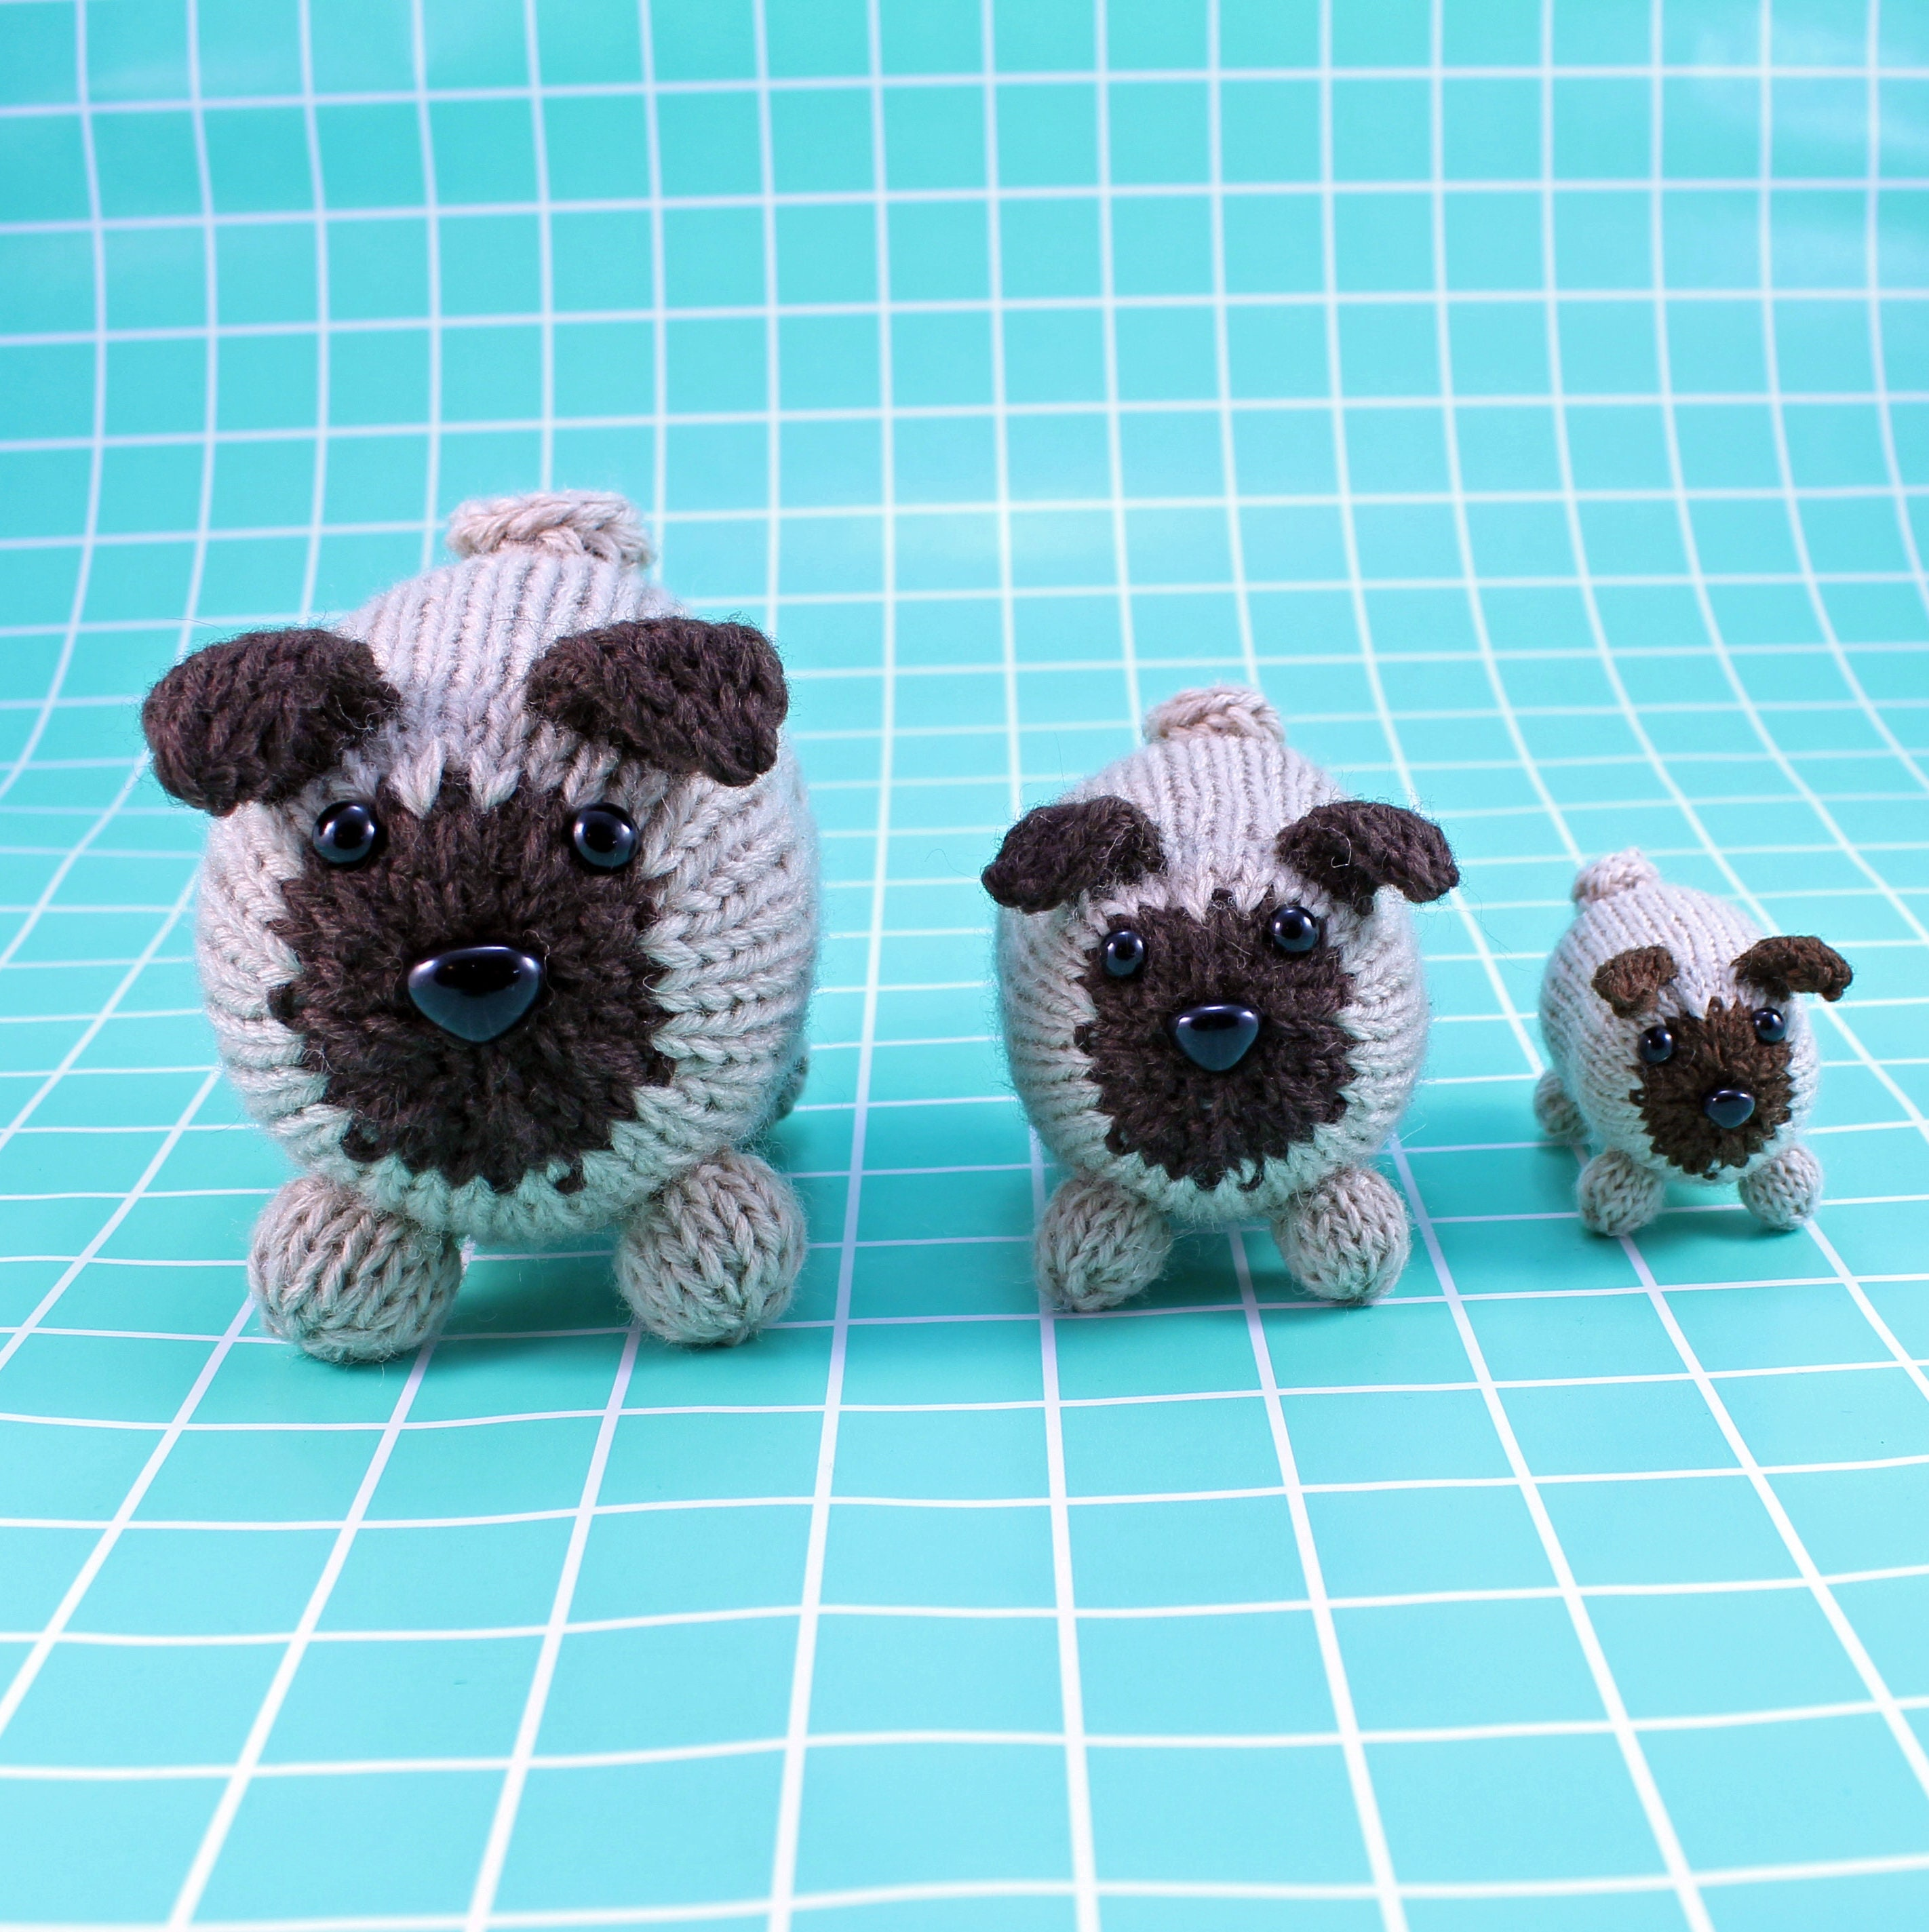 Wicked Chickens Yarn Wickedly Pudgy Pocket Pug Knitting Pattern ...